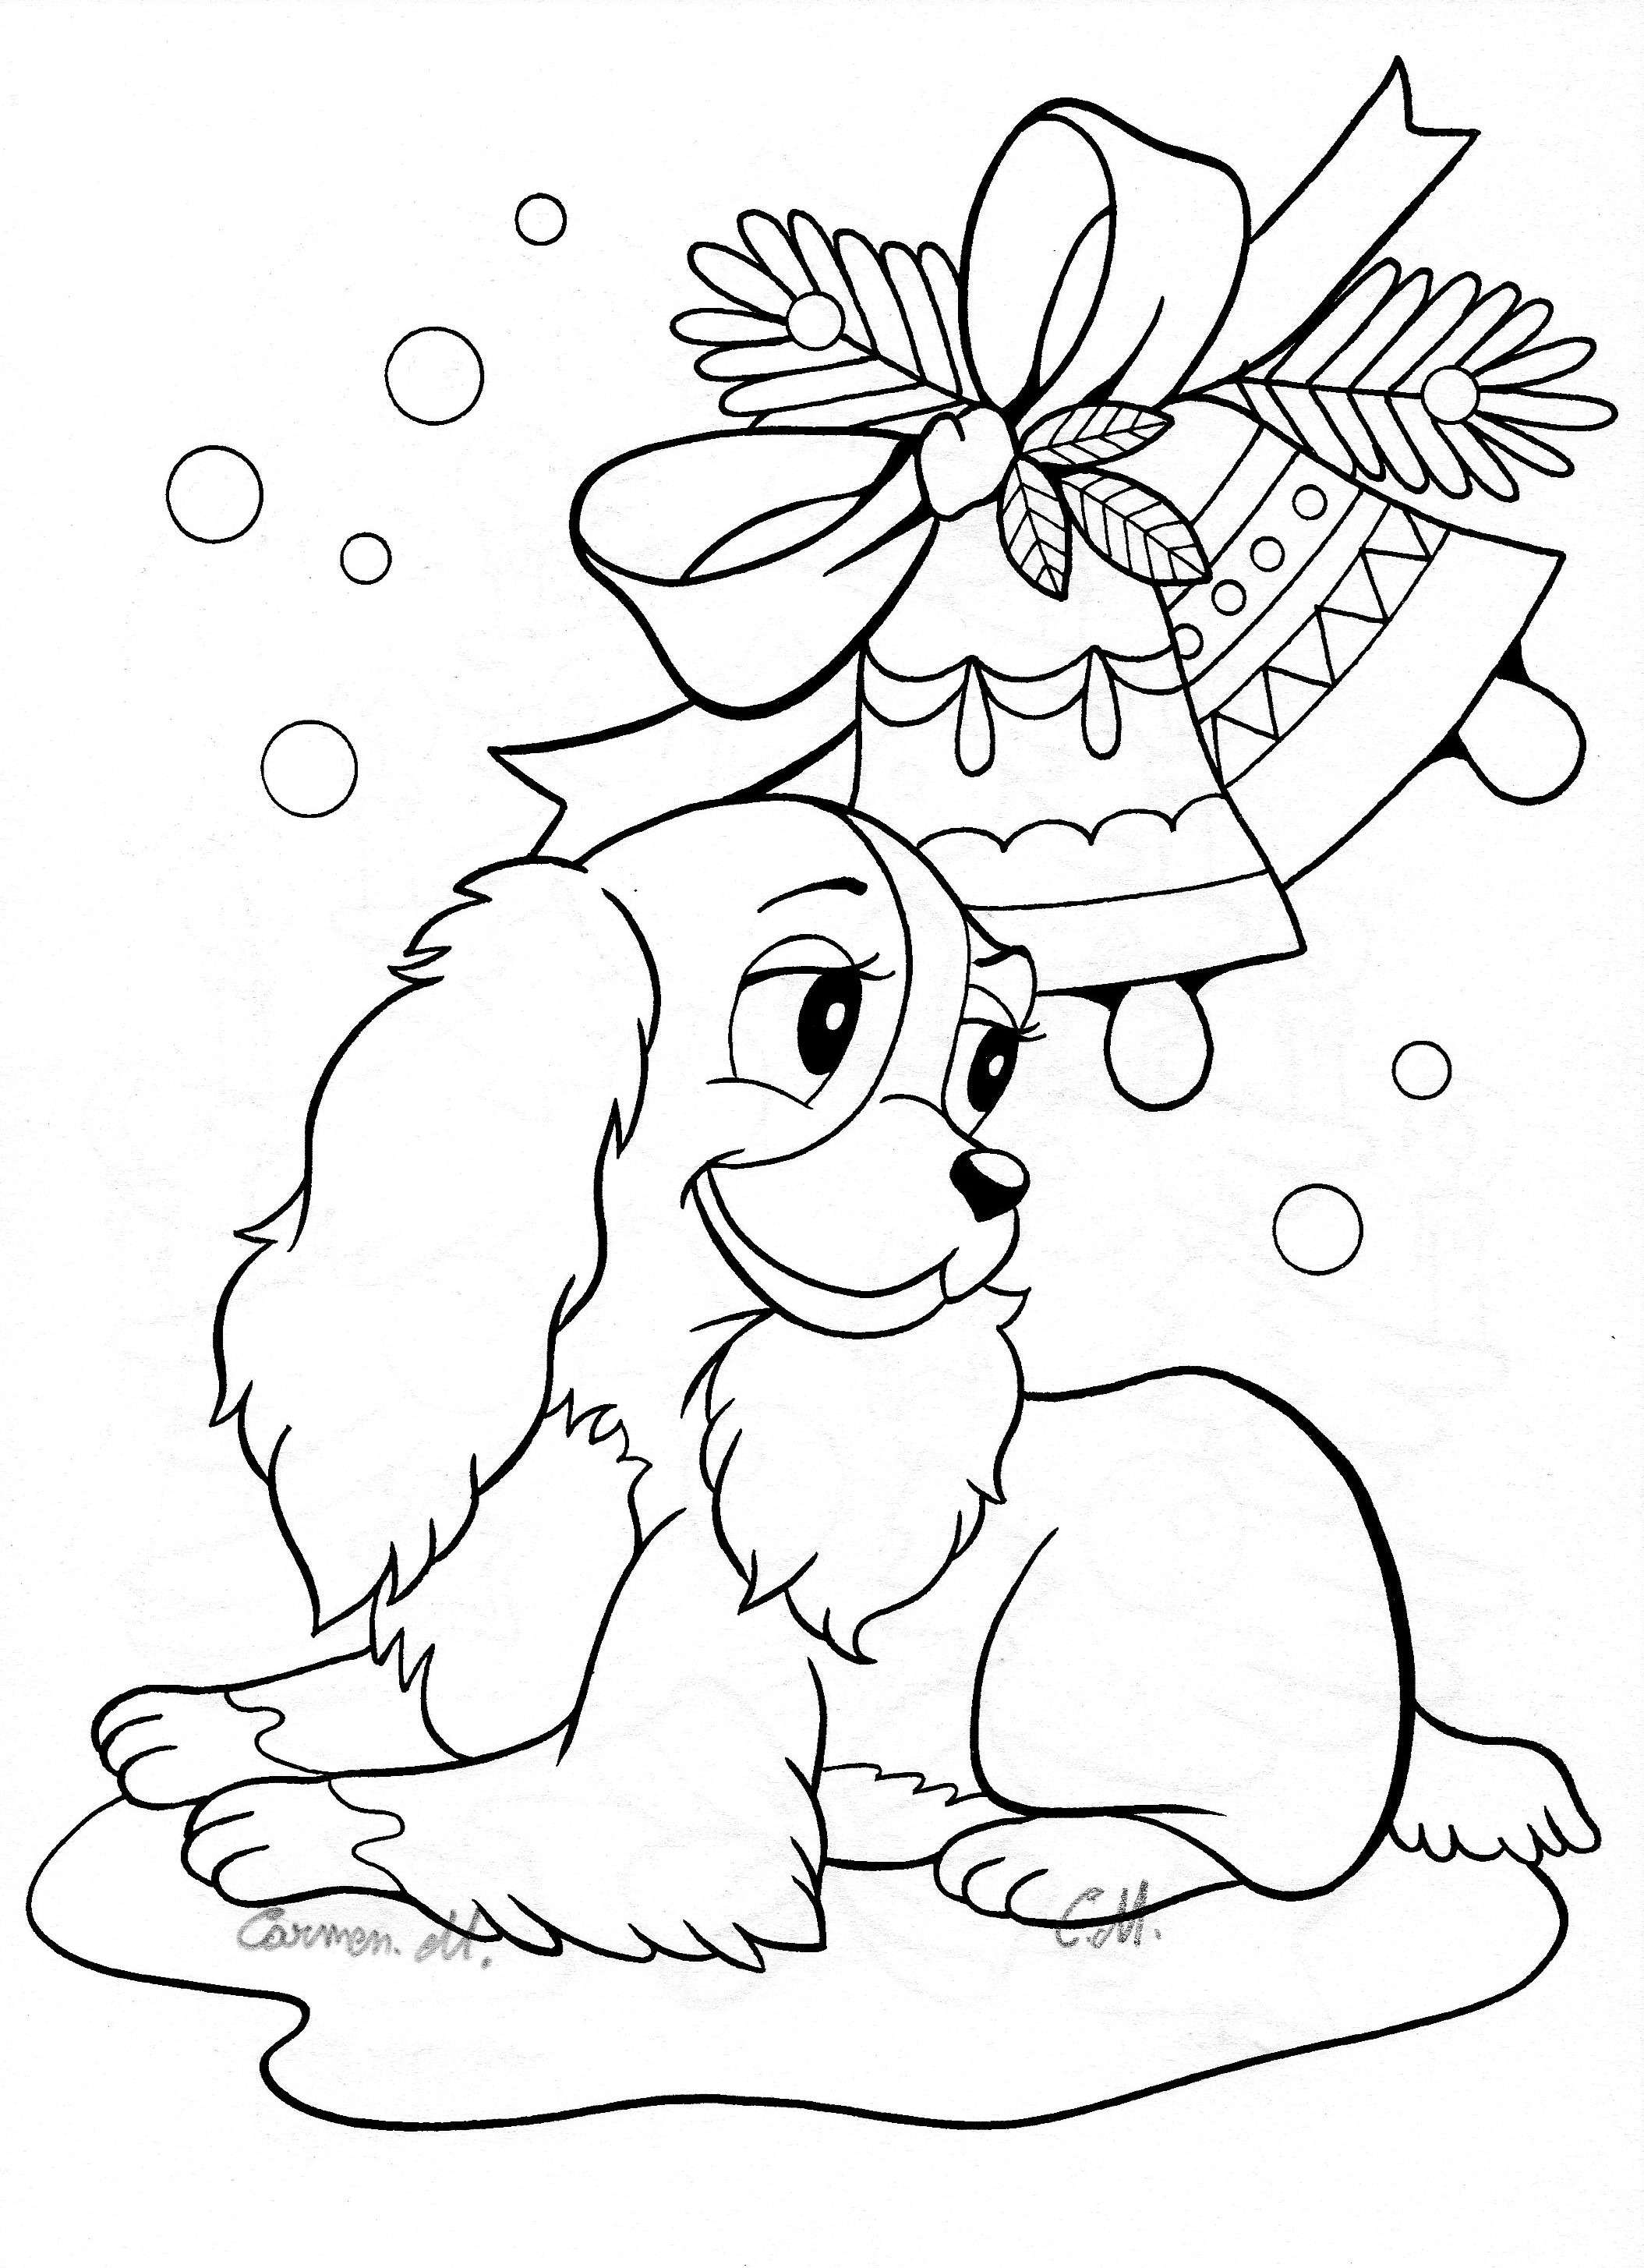 Christmas Lego Coloring Pages With Printable Page For Kids